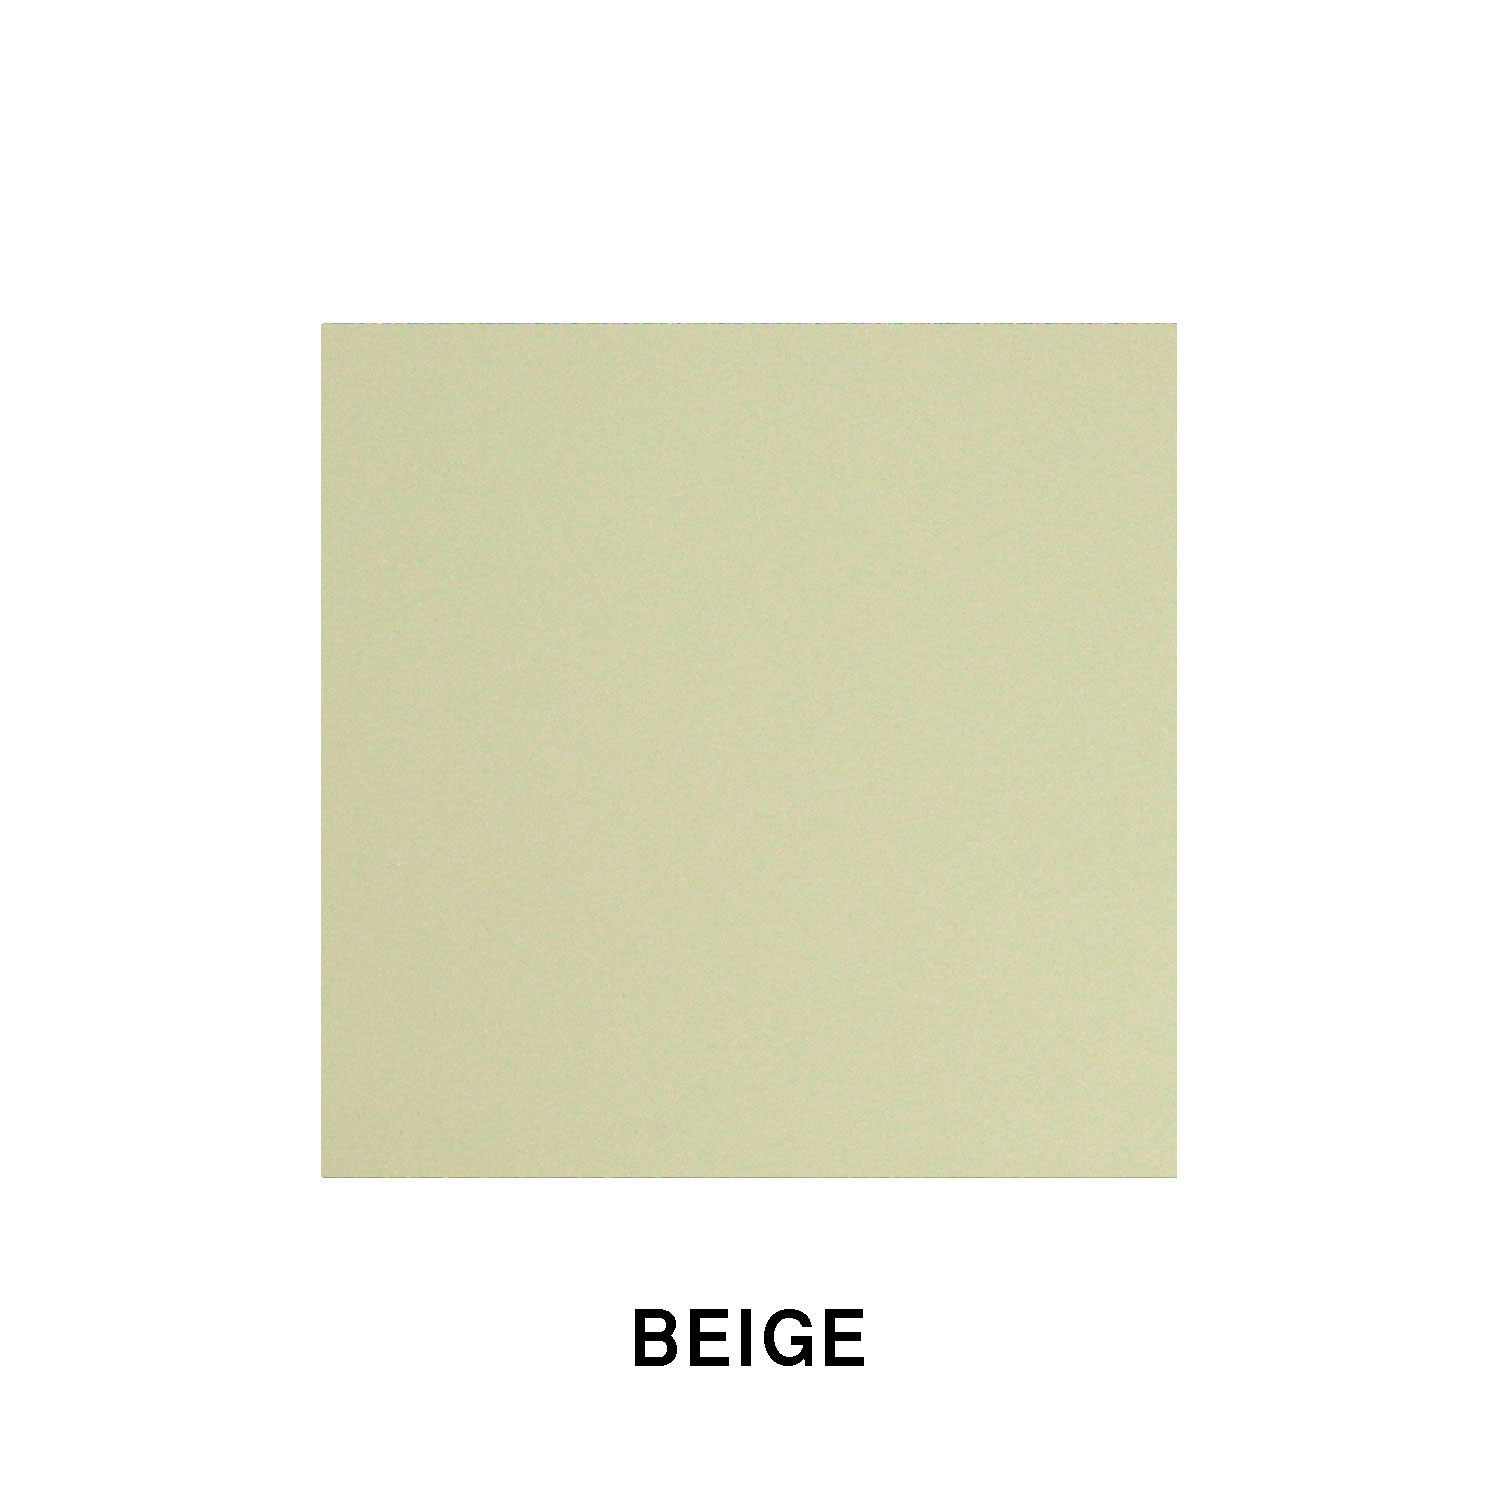 Beige Fiberglass Finish